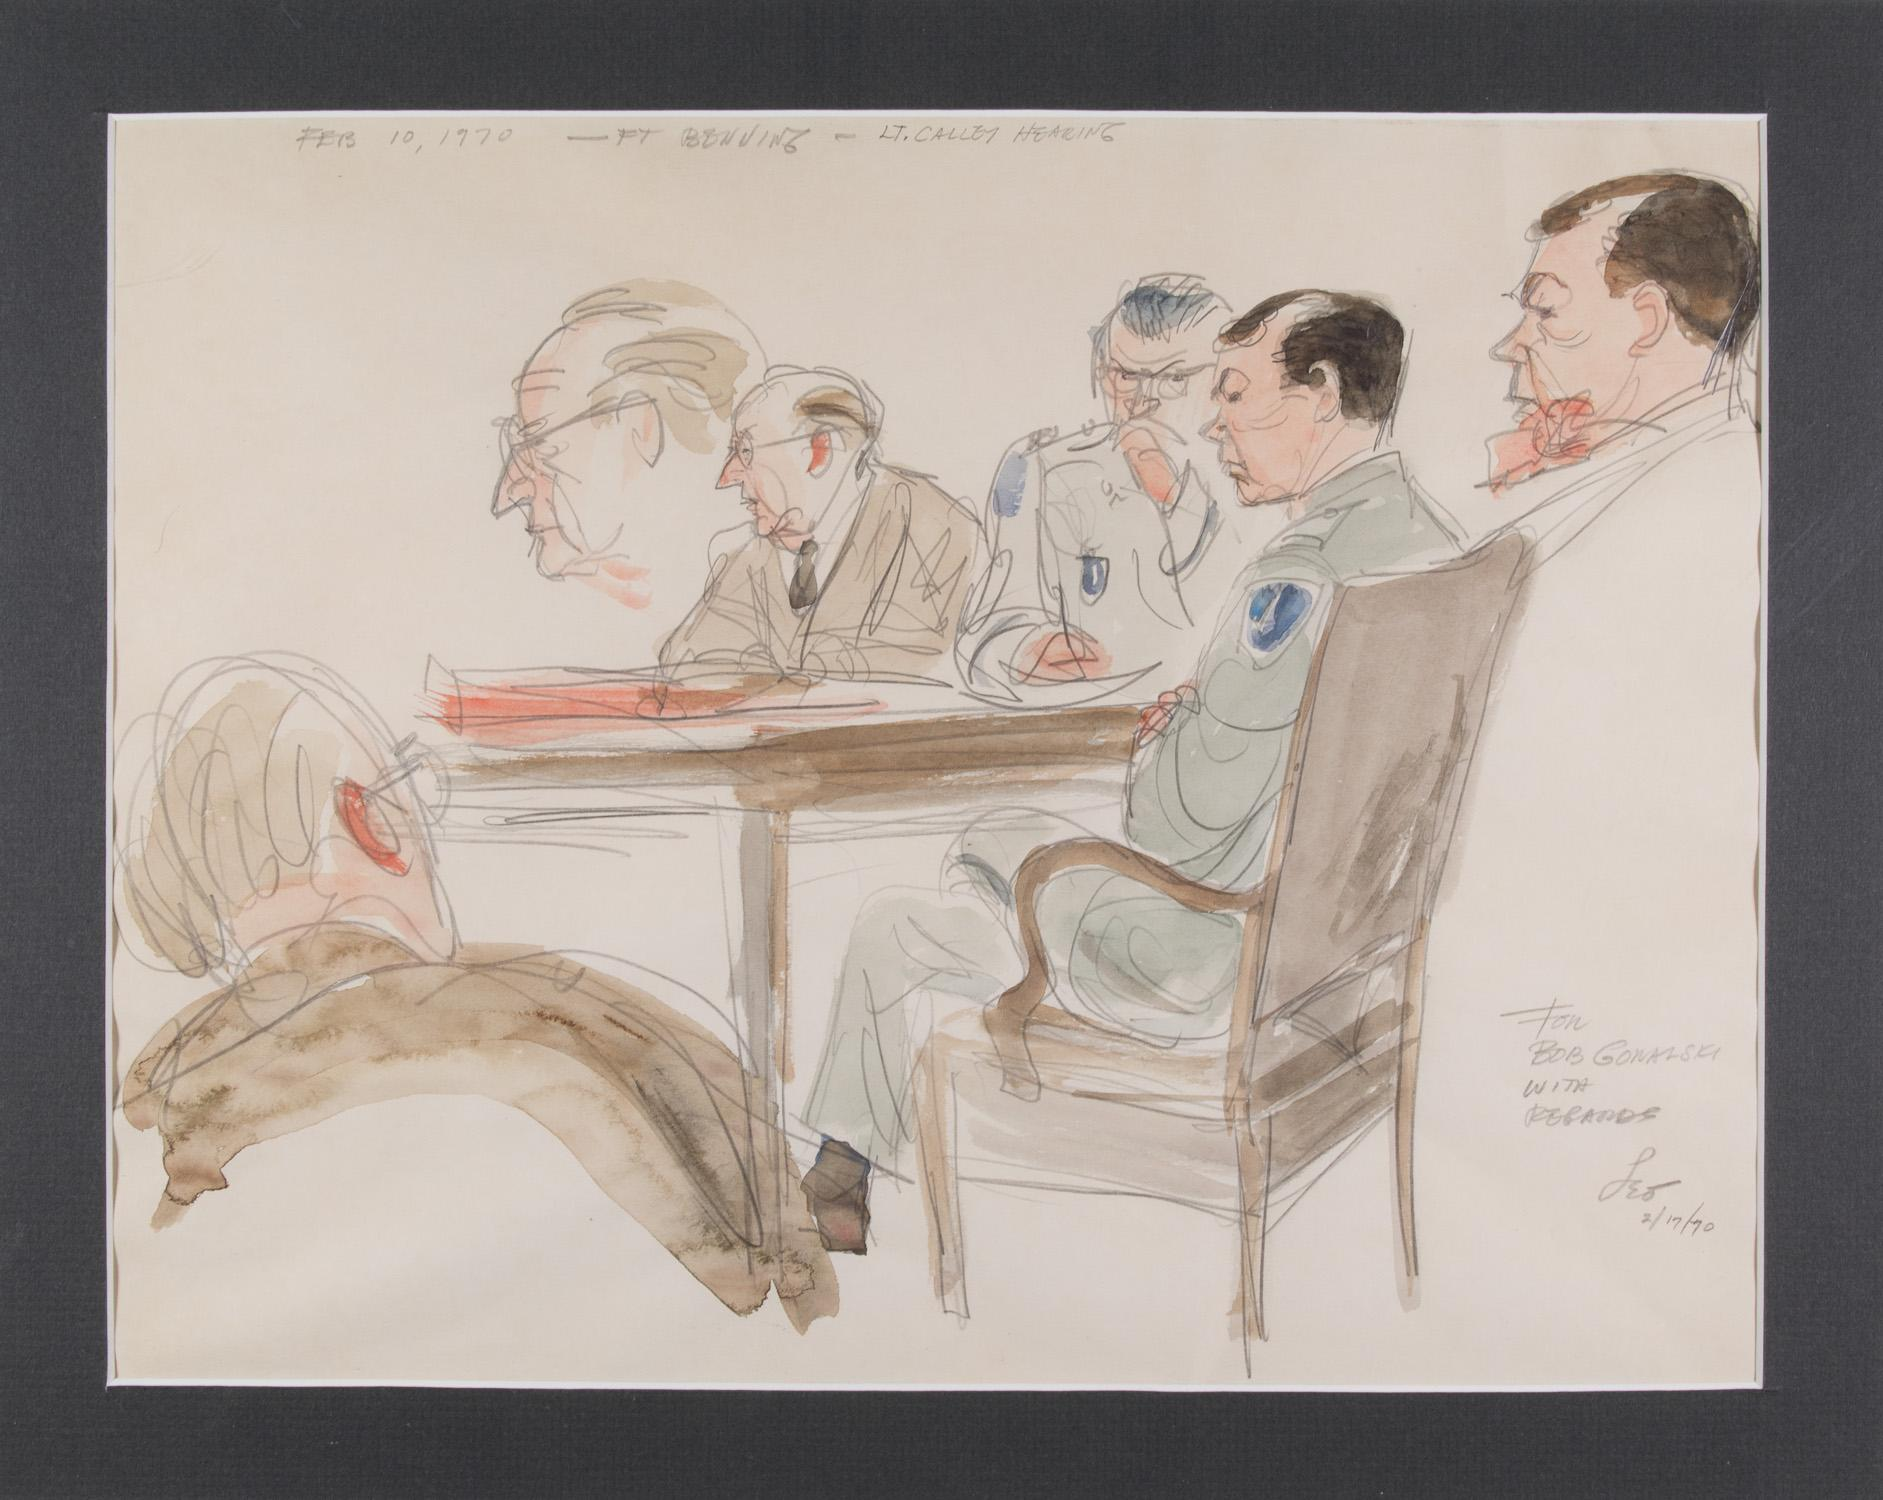 HERSHFIELD'S COURTROOM SKETCHES OF THE COURT-MARTIAL OF WILLIAM CALLEY, WAR CRIMINAL OF MY LAI MASSACRE